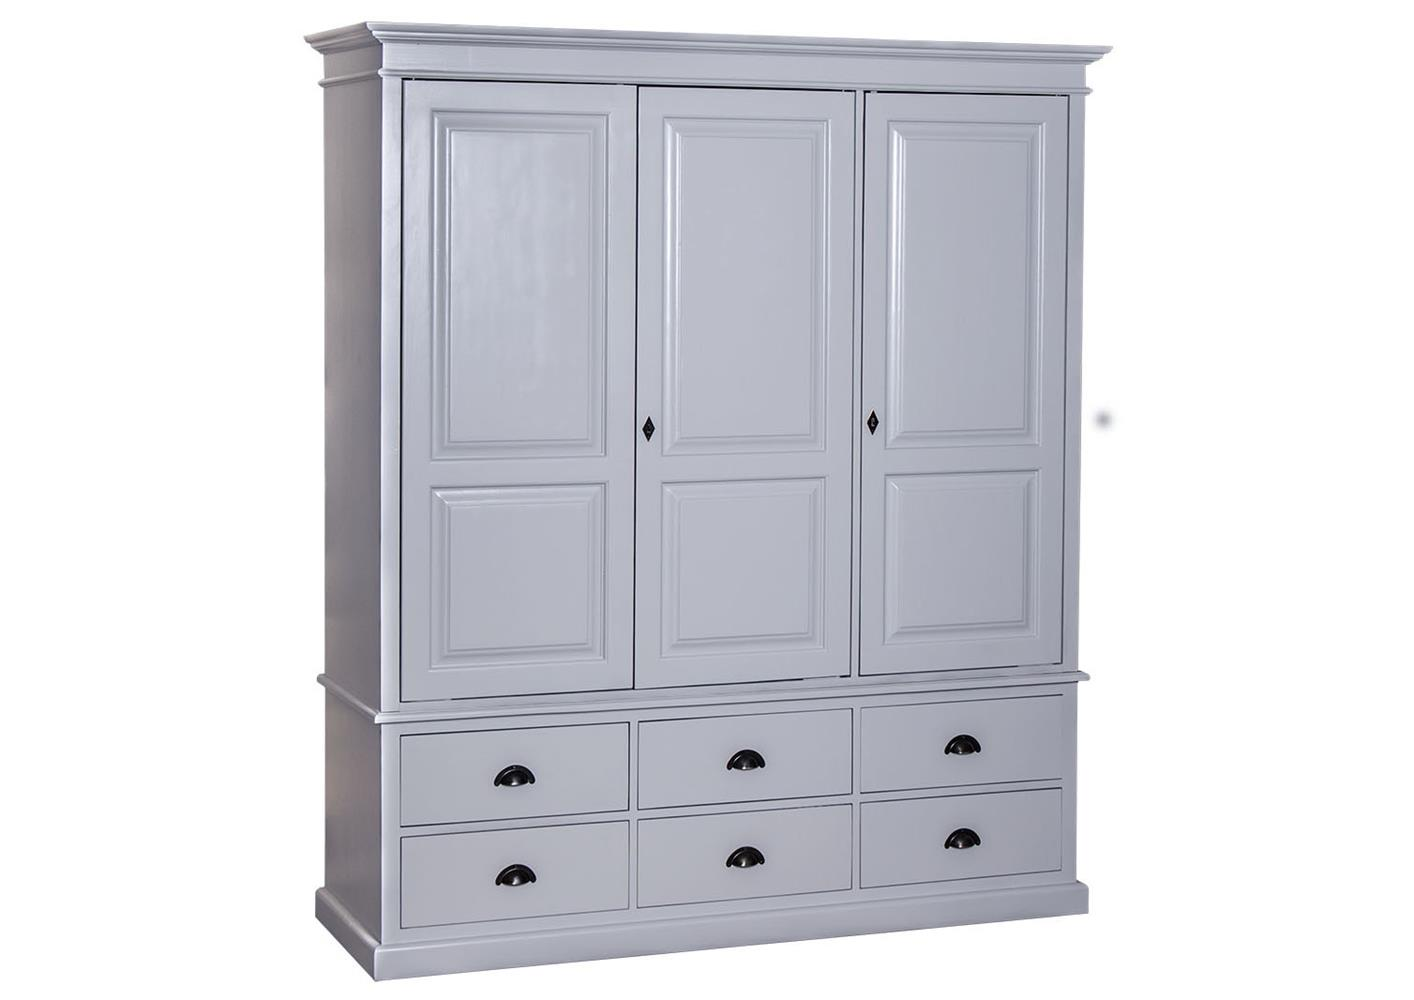 acheter votre armoire en pin massif avec 3 portes. Black Bedroom Furniture Sets. Home Design Ideas